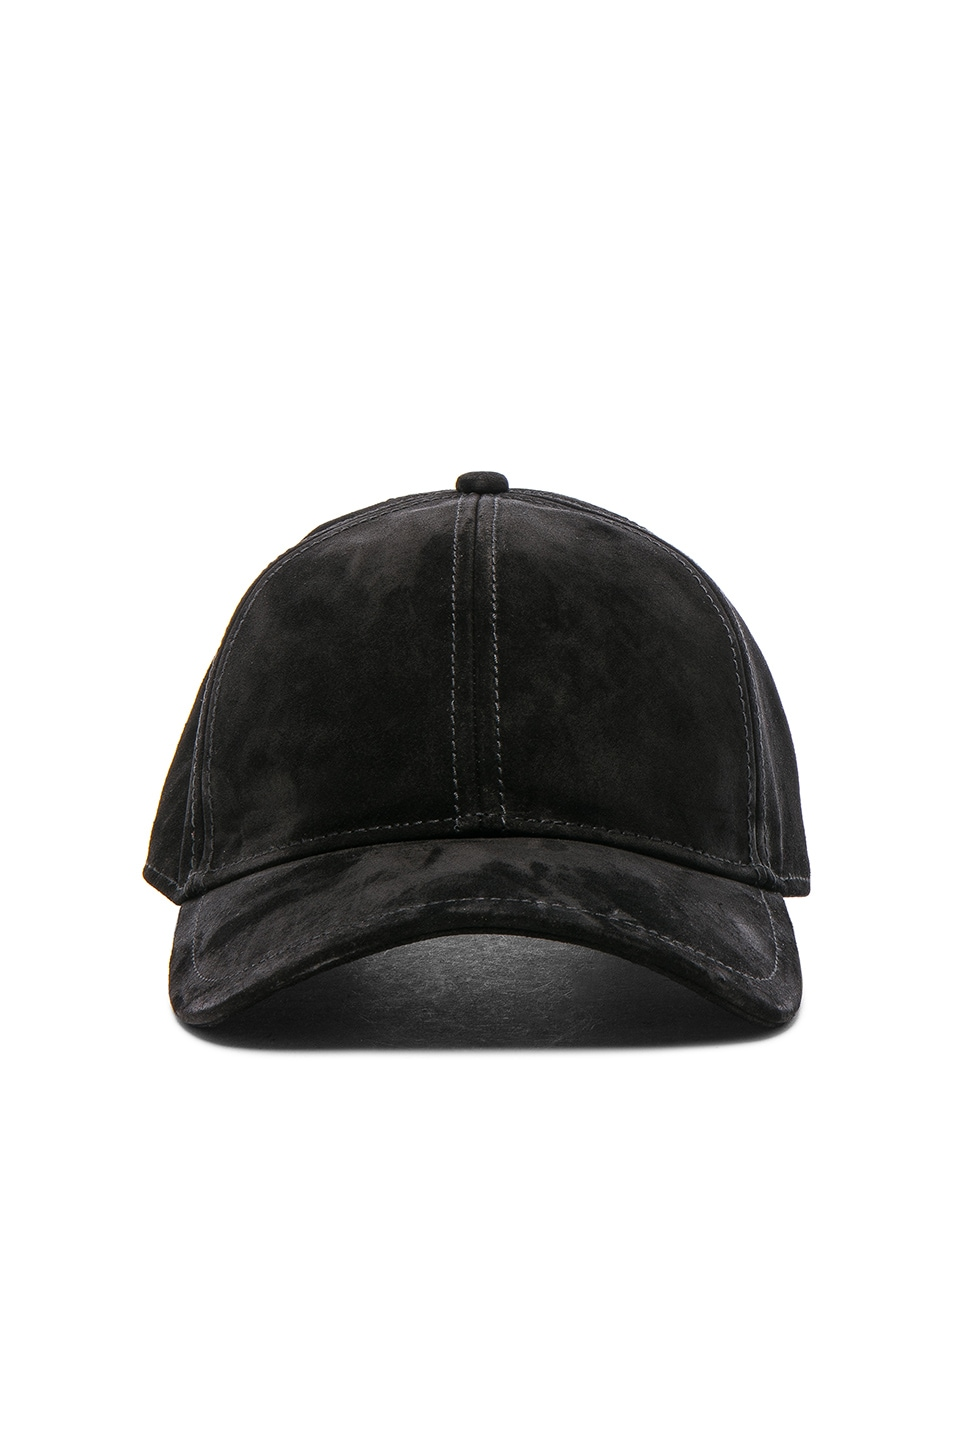 Image 1 of Rag & Bone Marilyn Baseball Cap in Black Suede